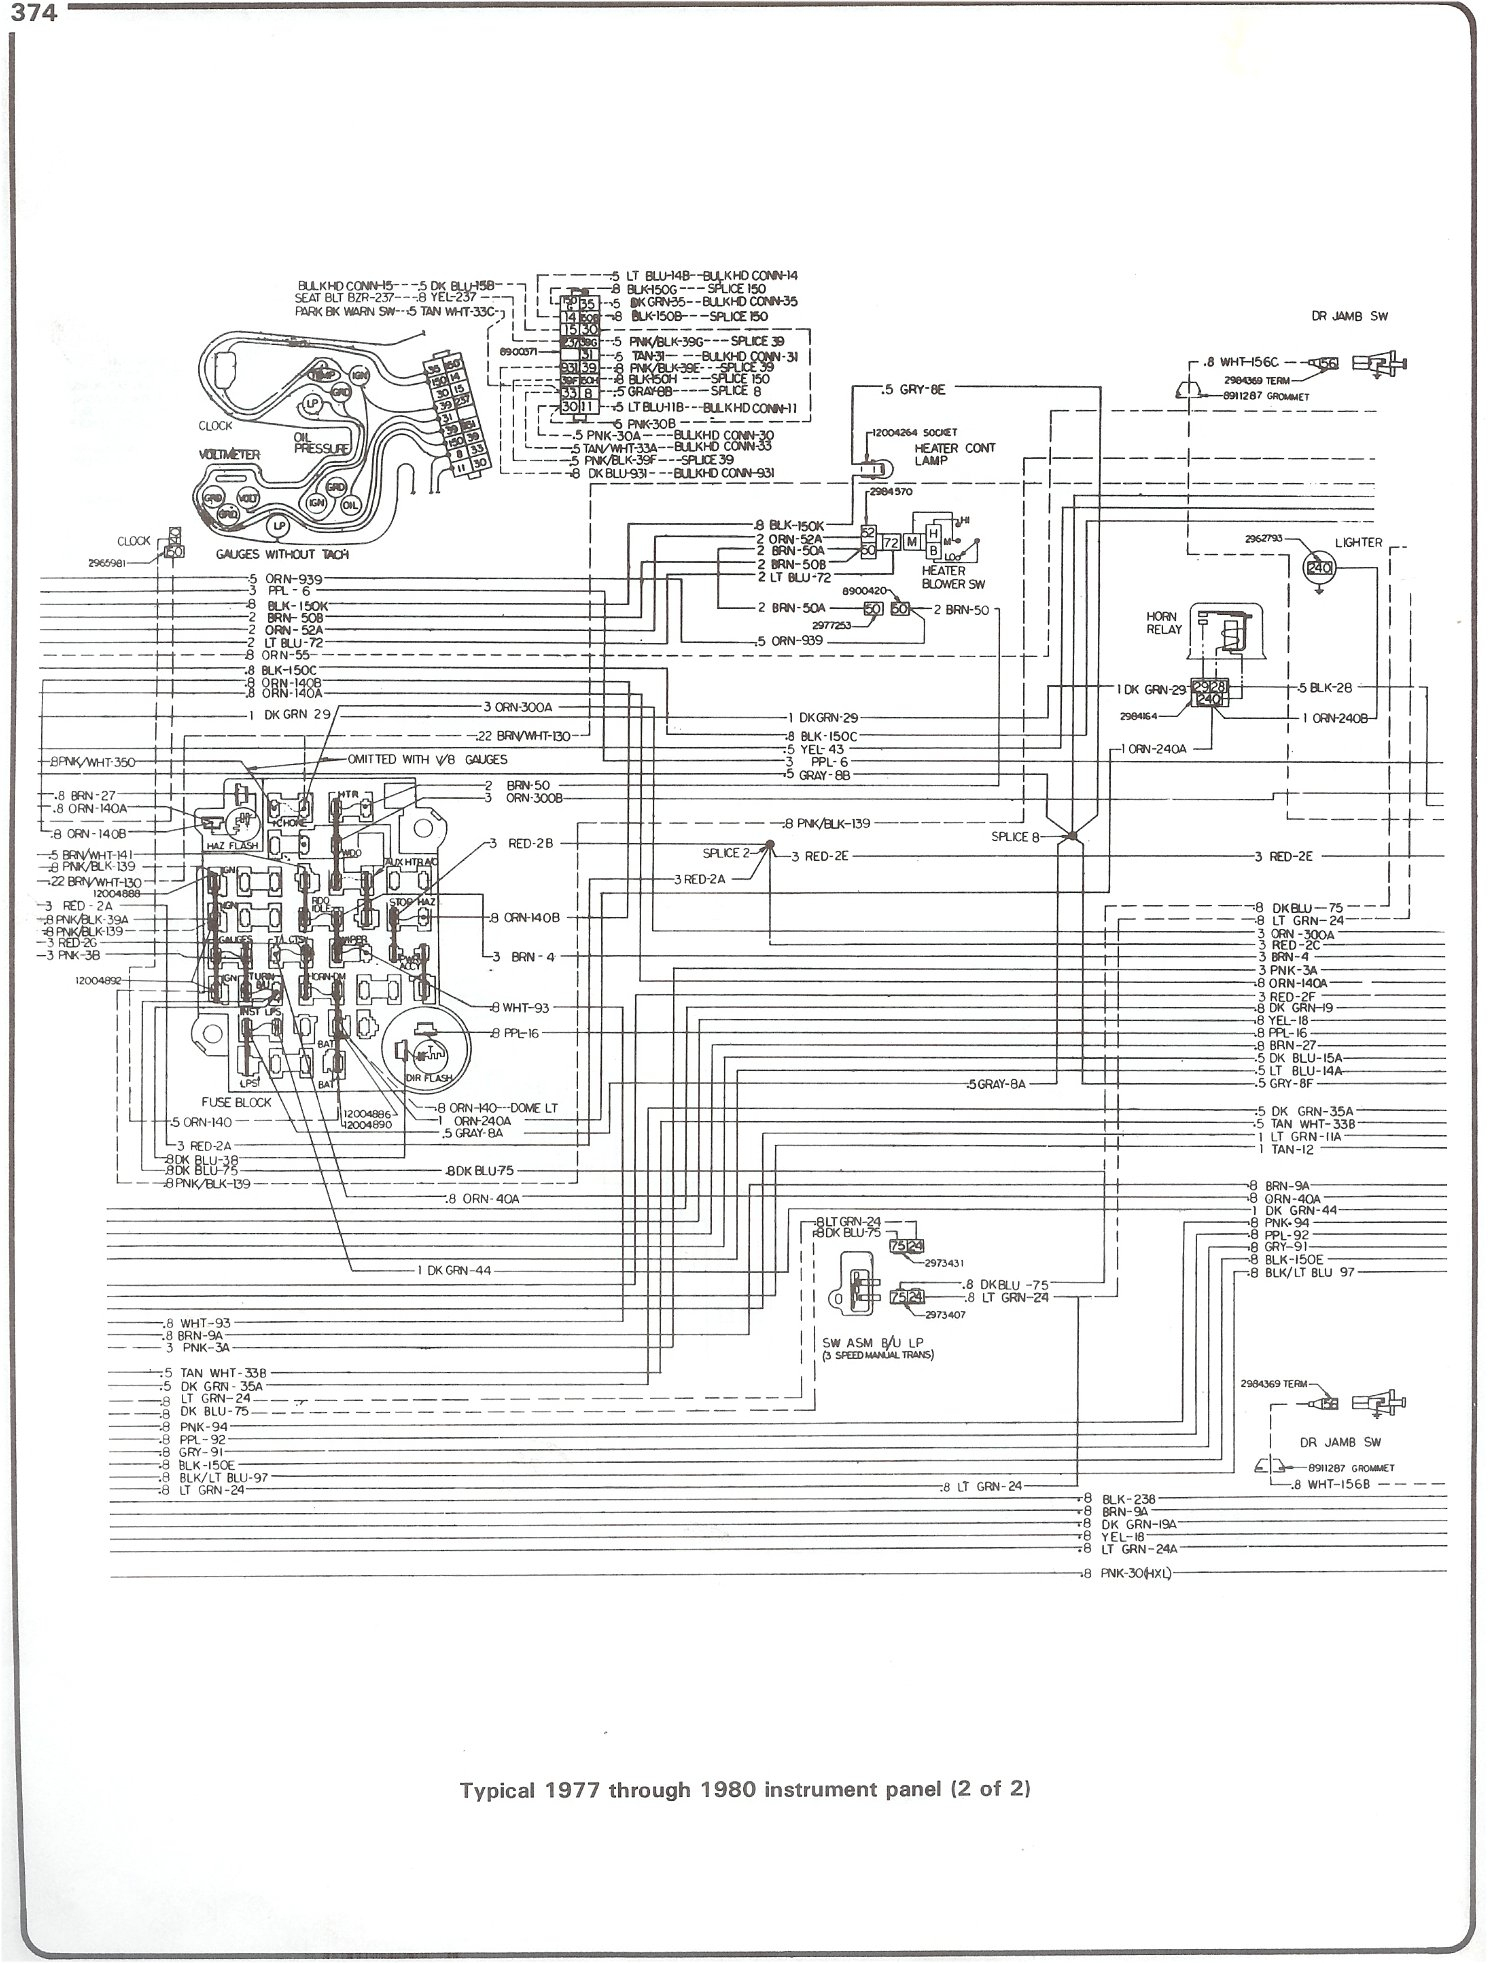 78 Gmc Wiring Diagram - Wiring Diagram Data Oreo - 1978 Chevy Truck Wiring Diagram